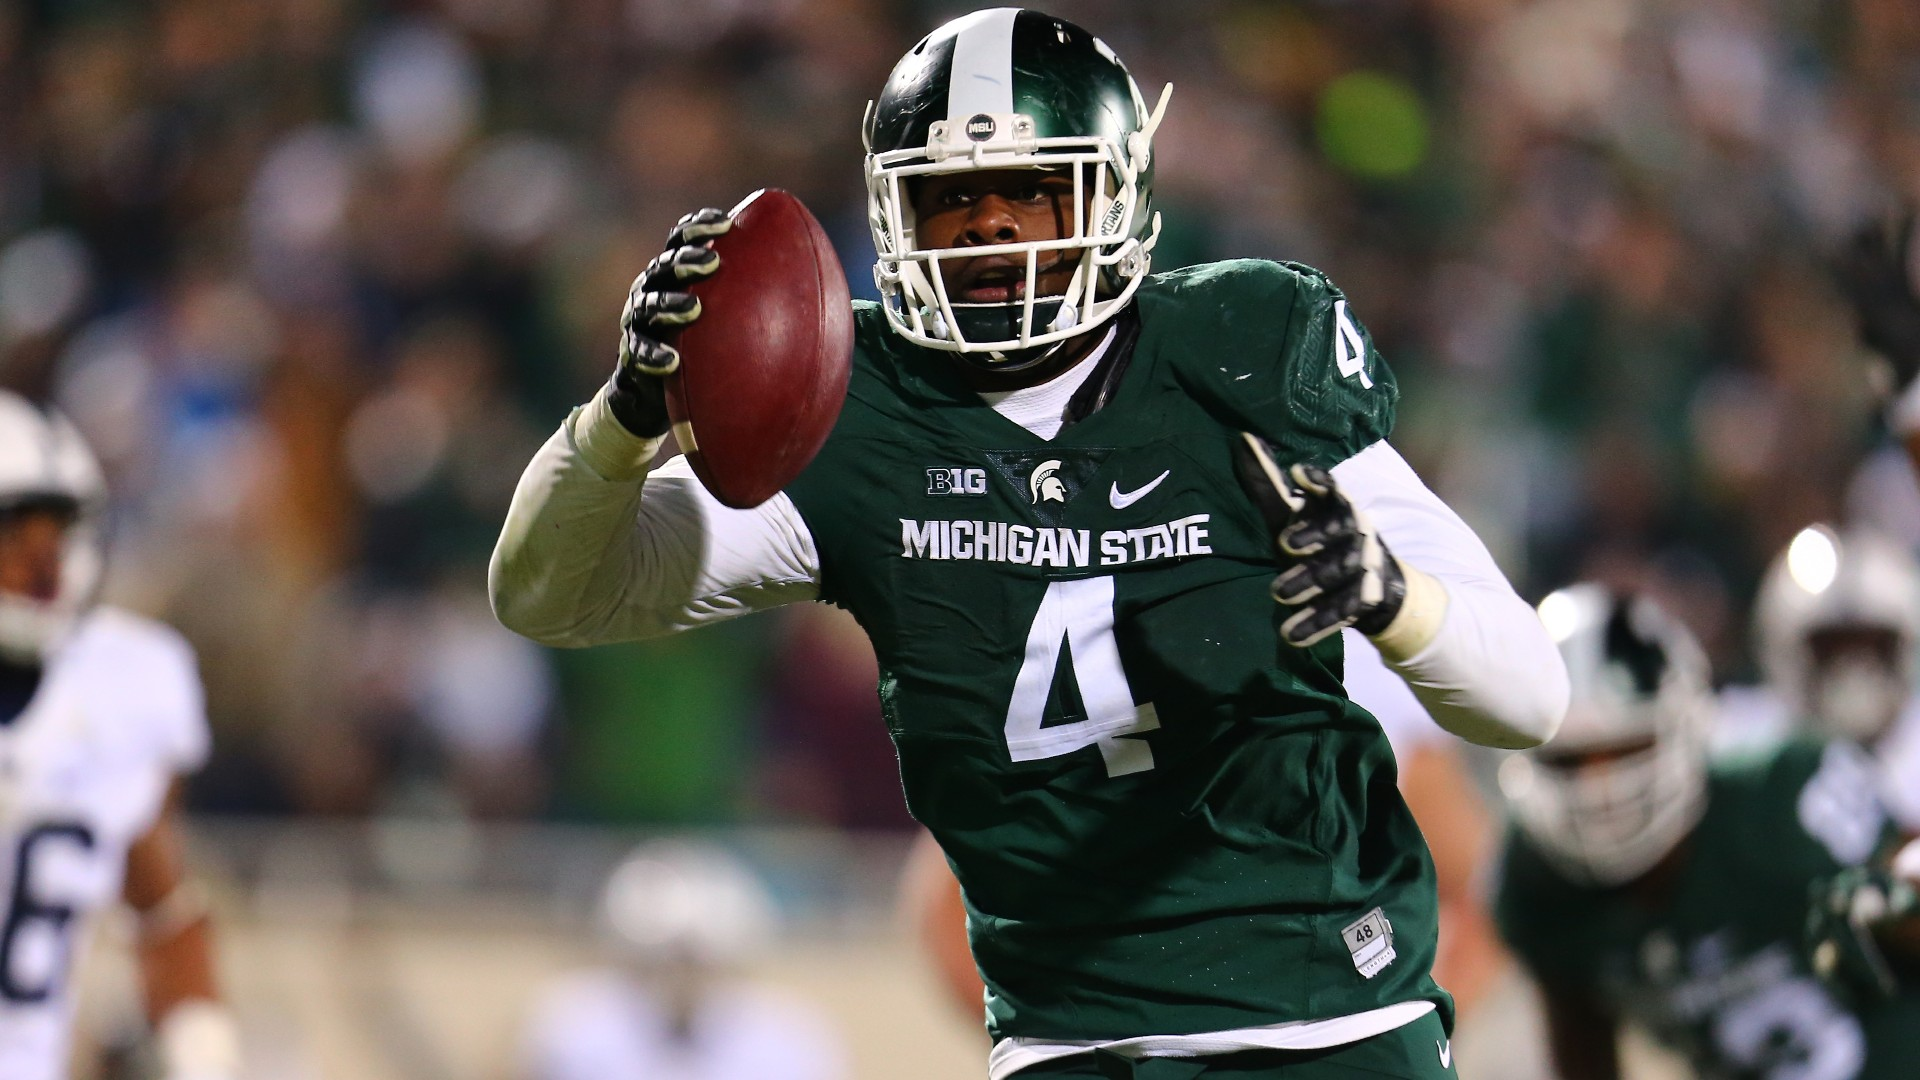 Browns give Malik McDowell a chance to resume his NFL career after ATV accident and legal issues